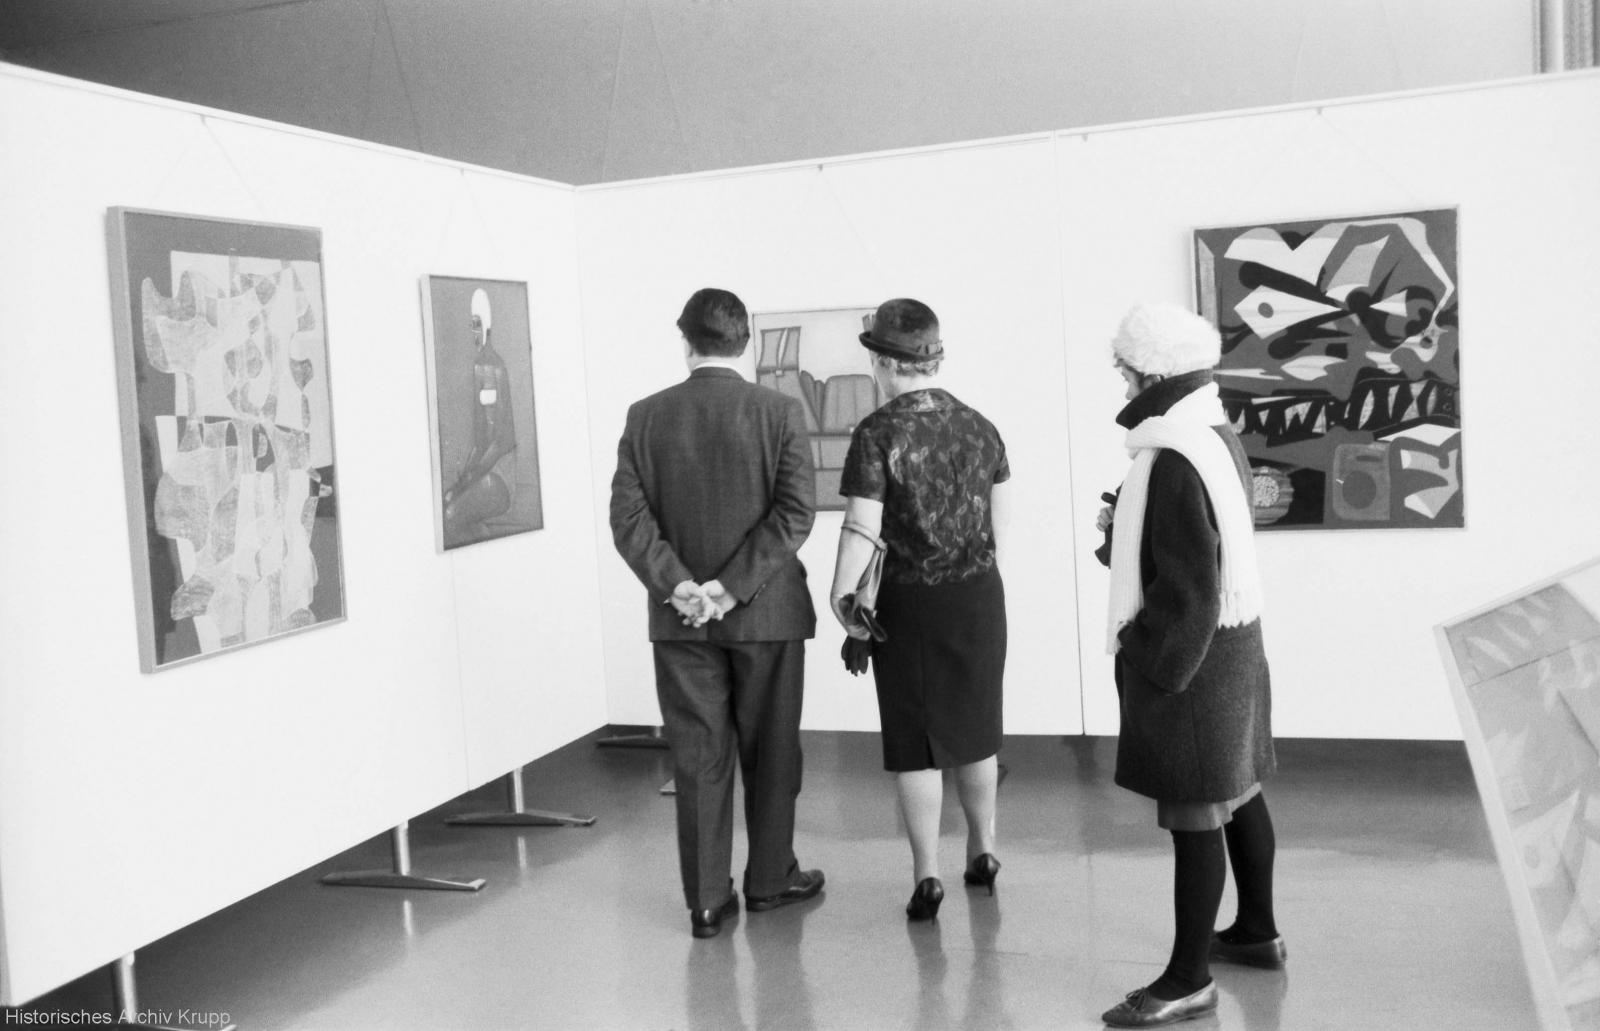 A look inside the exhibition, including works by Maria Jarema (1908-1958) and Jerzy Nowosielski (1923-2011). (l to r.: Jarema, Filter XIII, 1954; Nowosielski, Female Swimmer, 1959 and Synthetic Landscape, 1961.